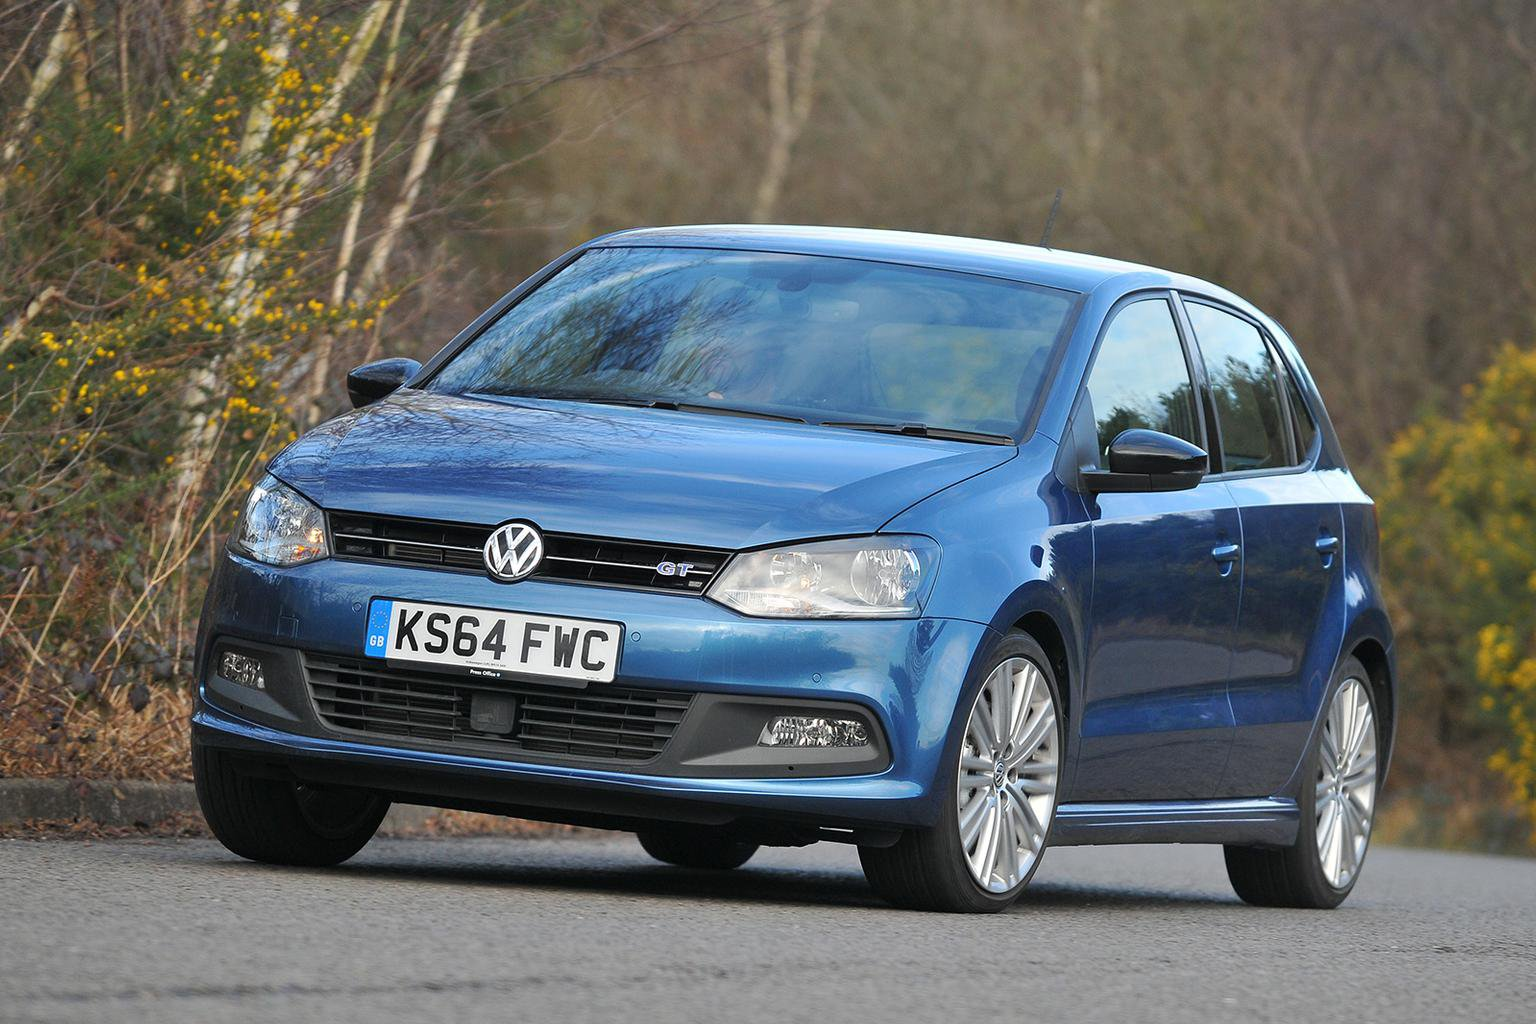 new Volkswagen Polo jitters